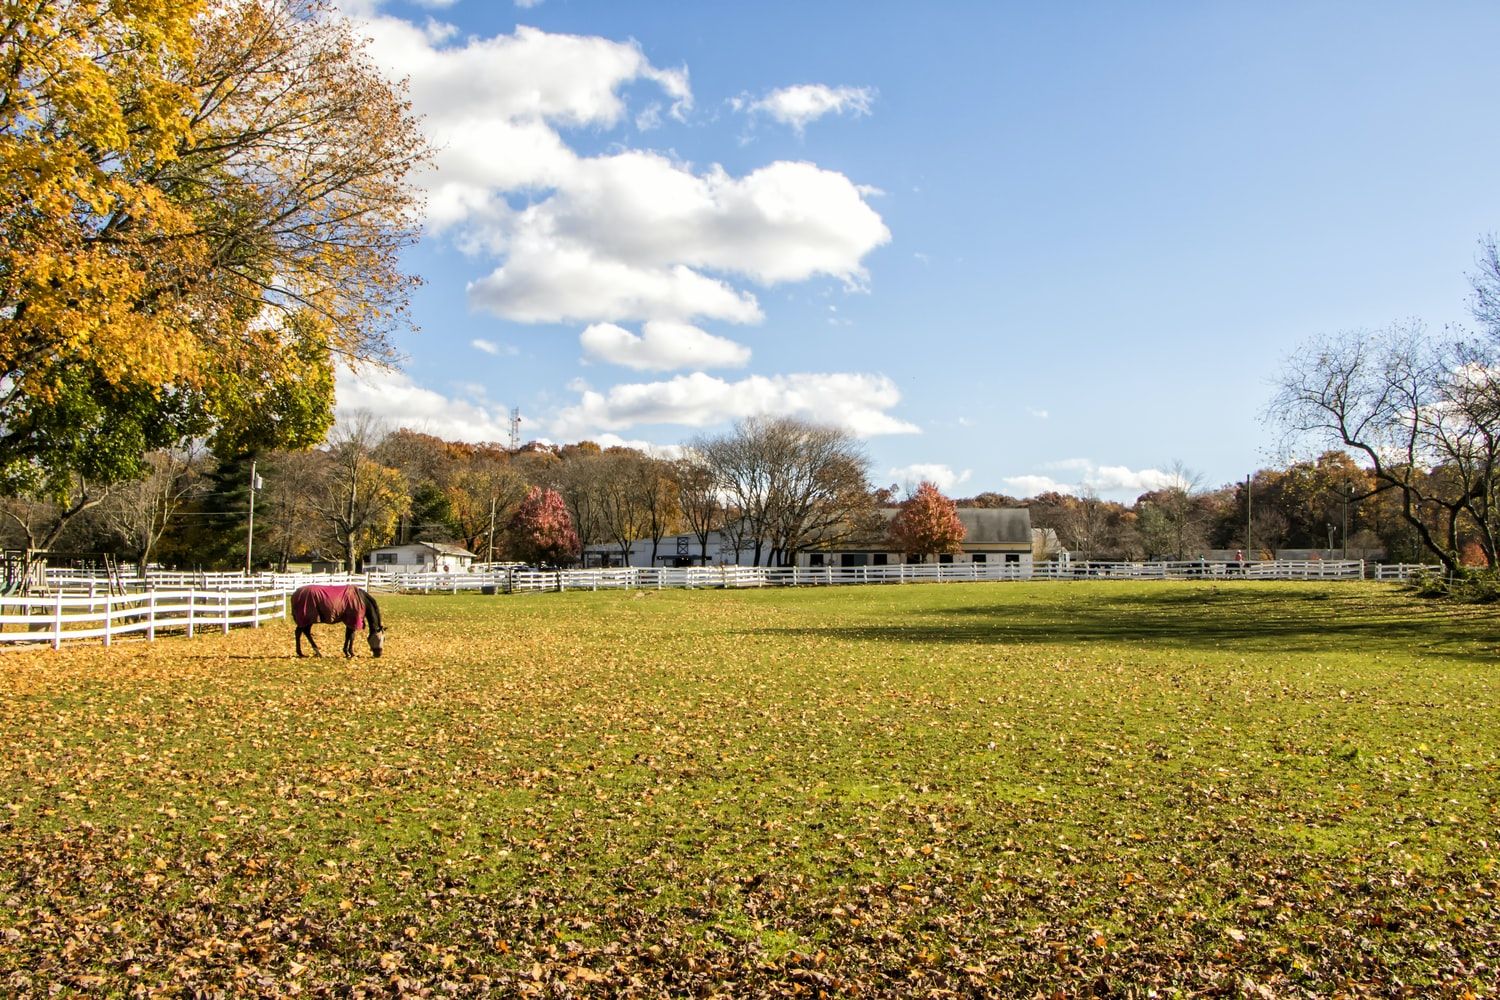 Houses for rent in NYC with a green pasture and a horse grazing